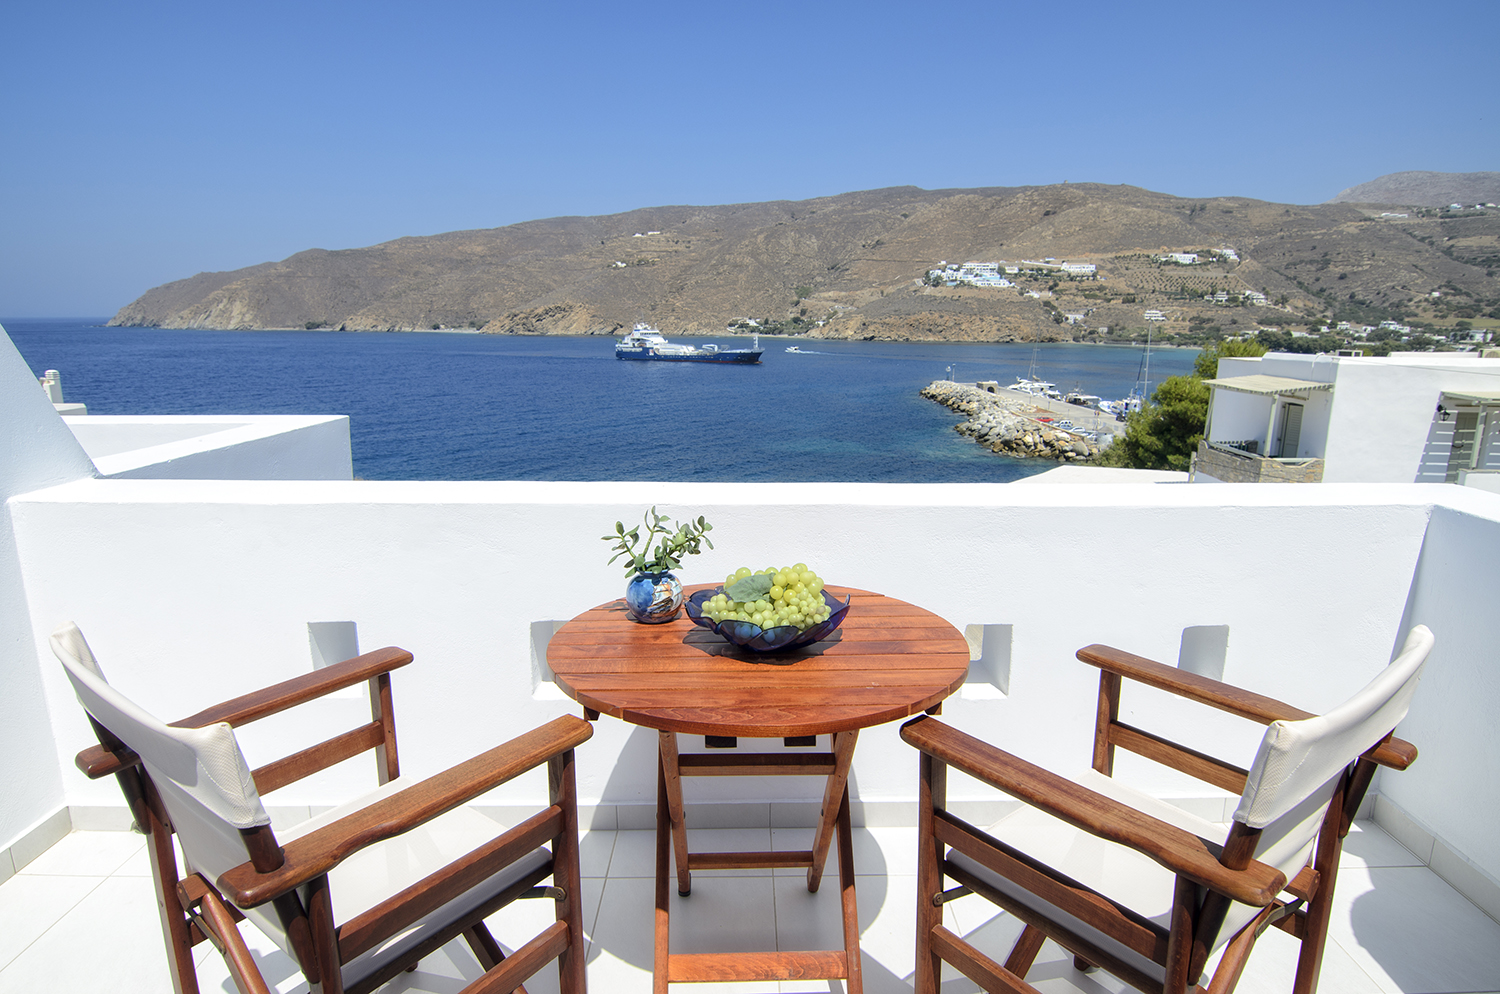 Location Hotel Agnadi on Amorgos